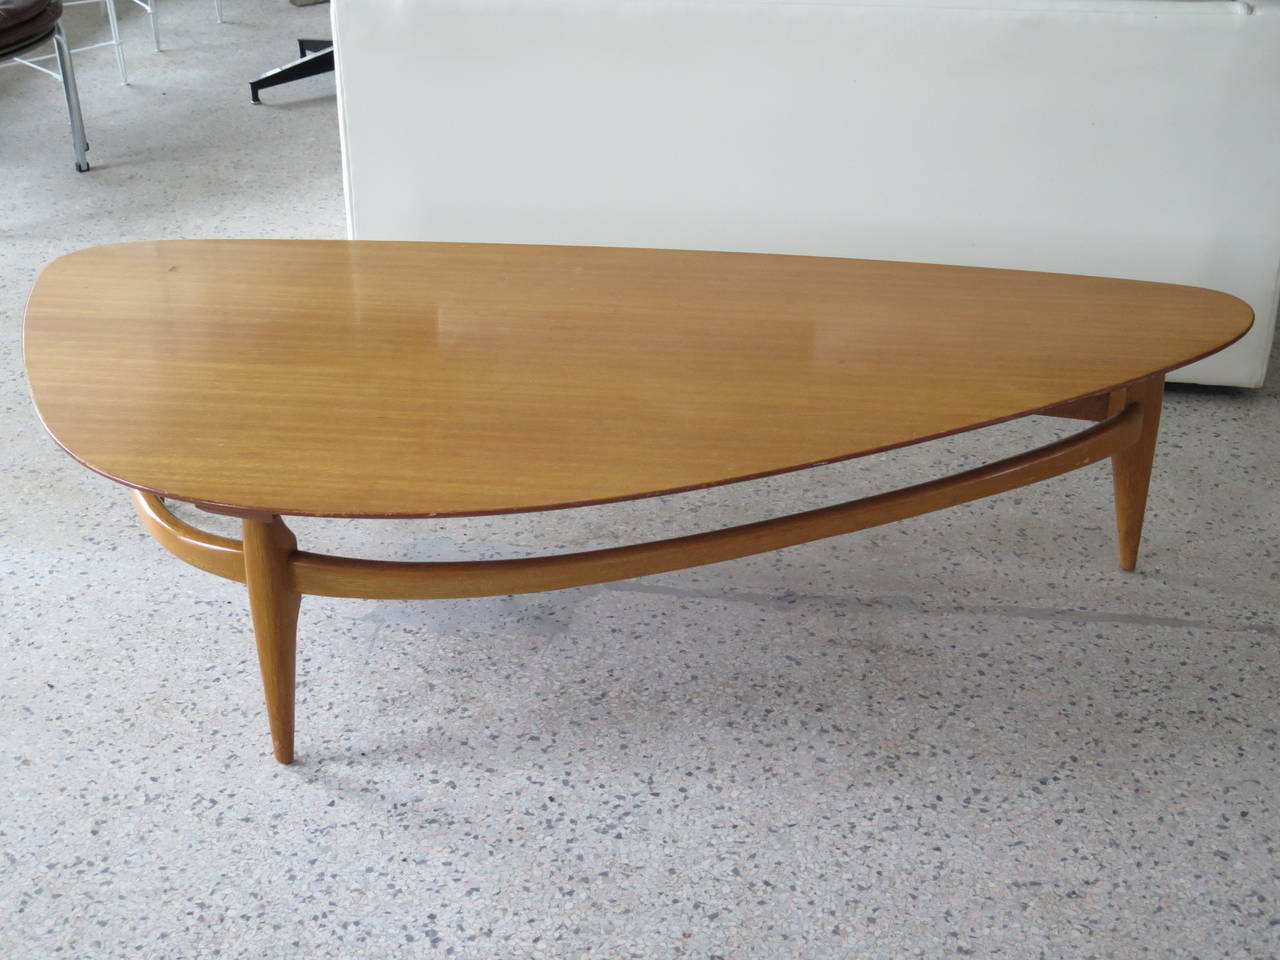 Biomorphic Coffee Table John Keal For Brown Saltman Biomorphic Coffee Table At 1stdibs